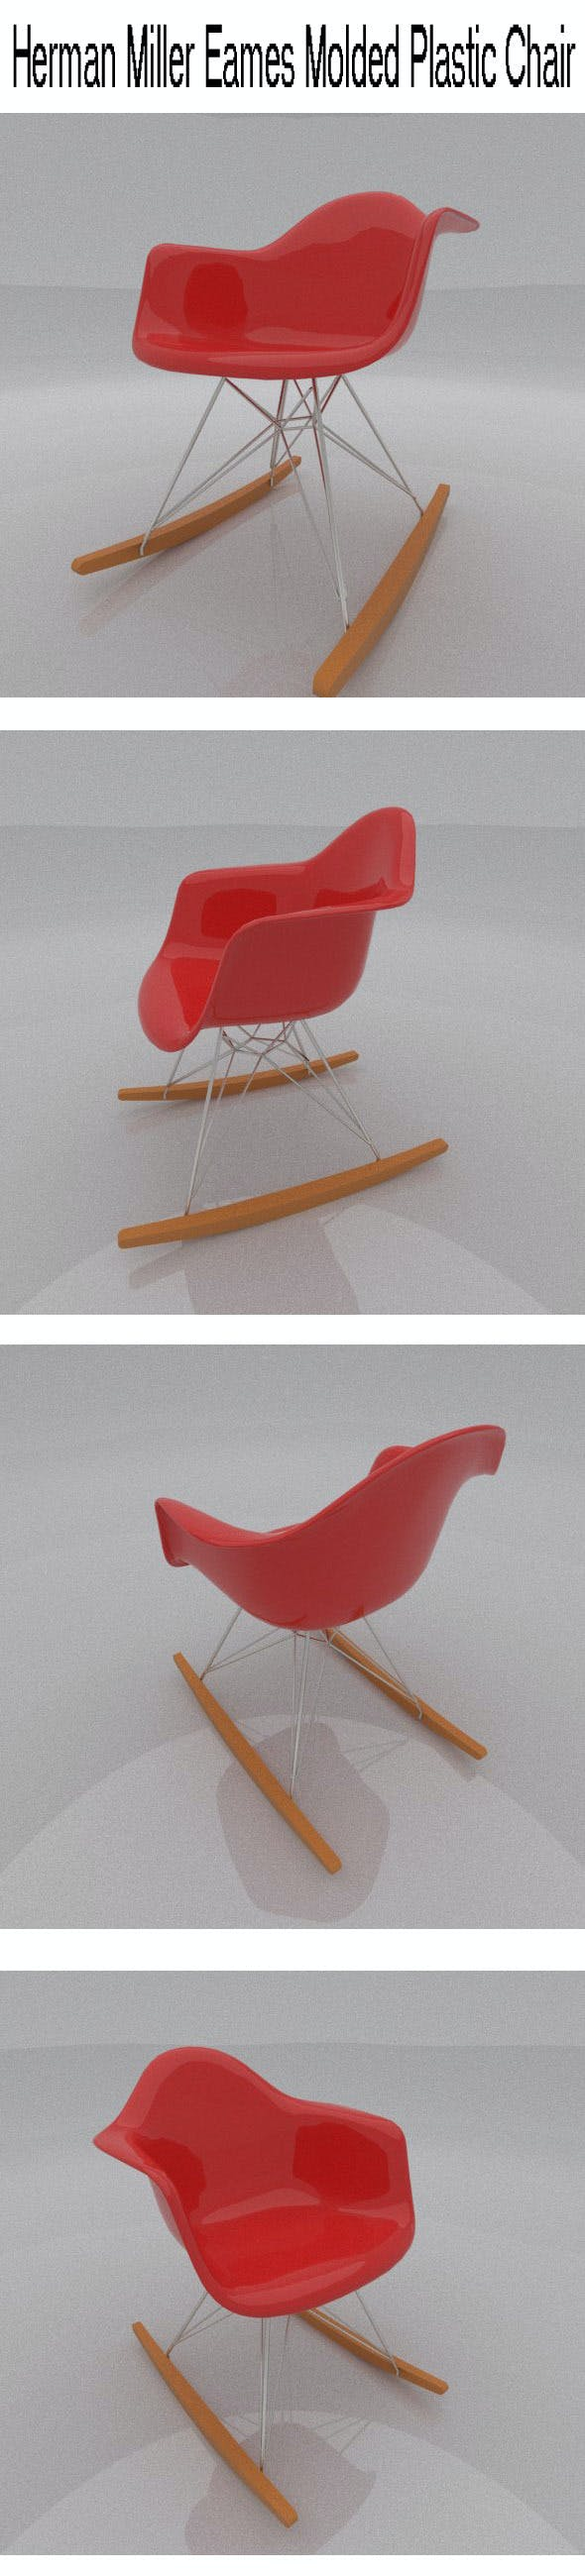 Herman Miller Eames Molded Plastic Chair - 3DOcean Item for Sale